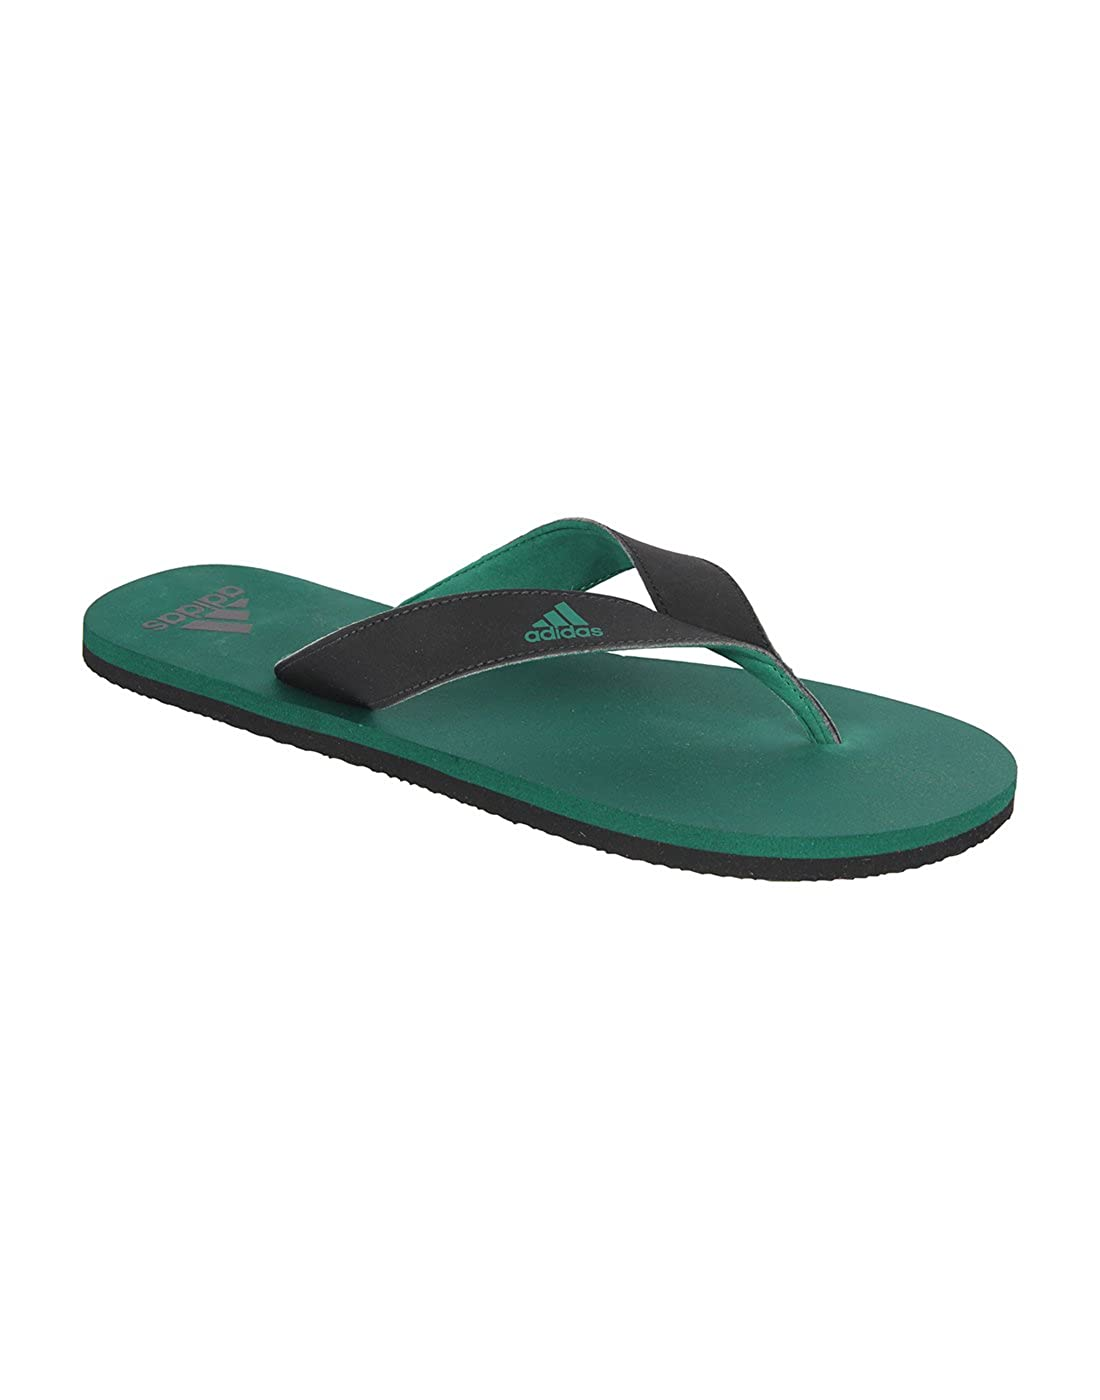 555e1569f Adidas Men s Eezay Max Out Corgrn Black Flip Flops Thong Sandals-6 UK India  (39.33 EU)(BA4878)  Buy Online at Low Prices in India - Amazon.in